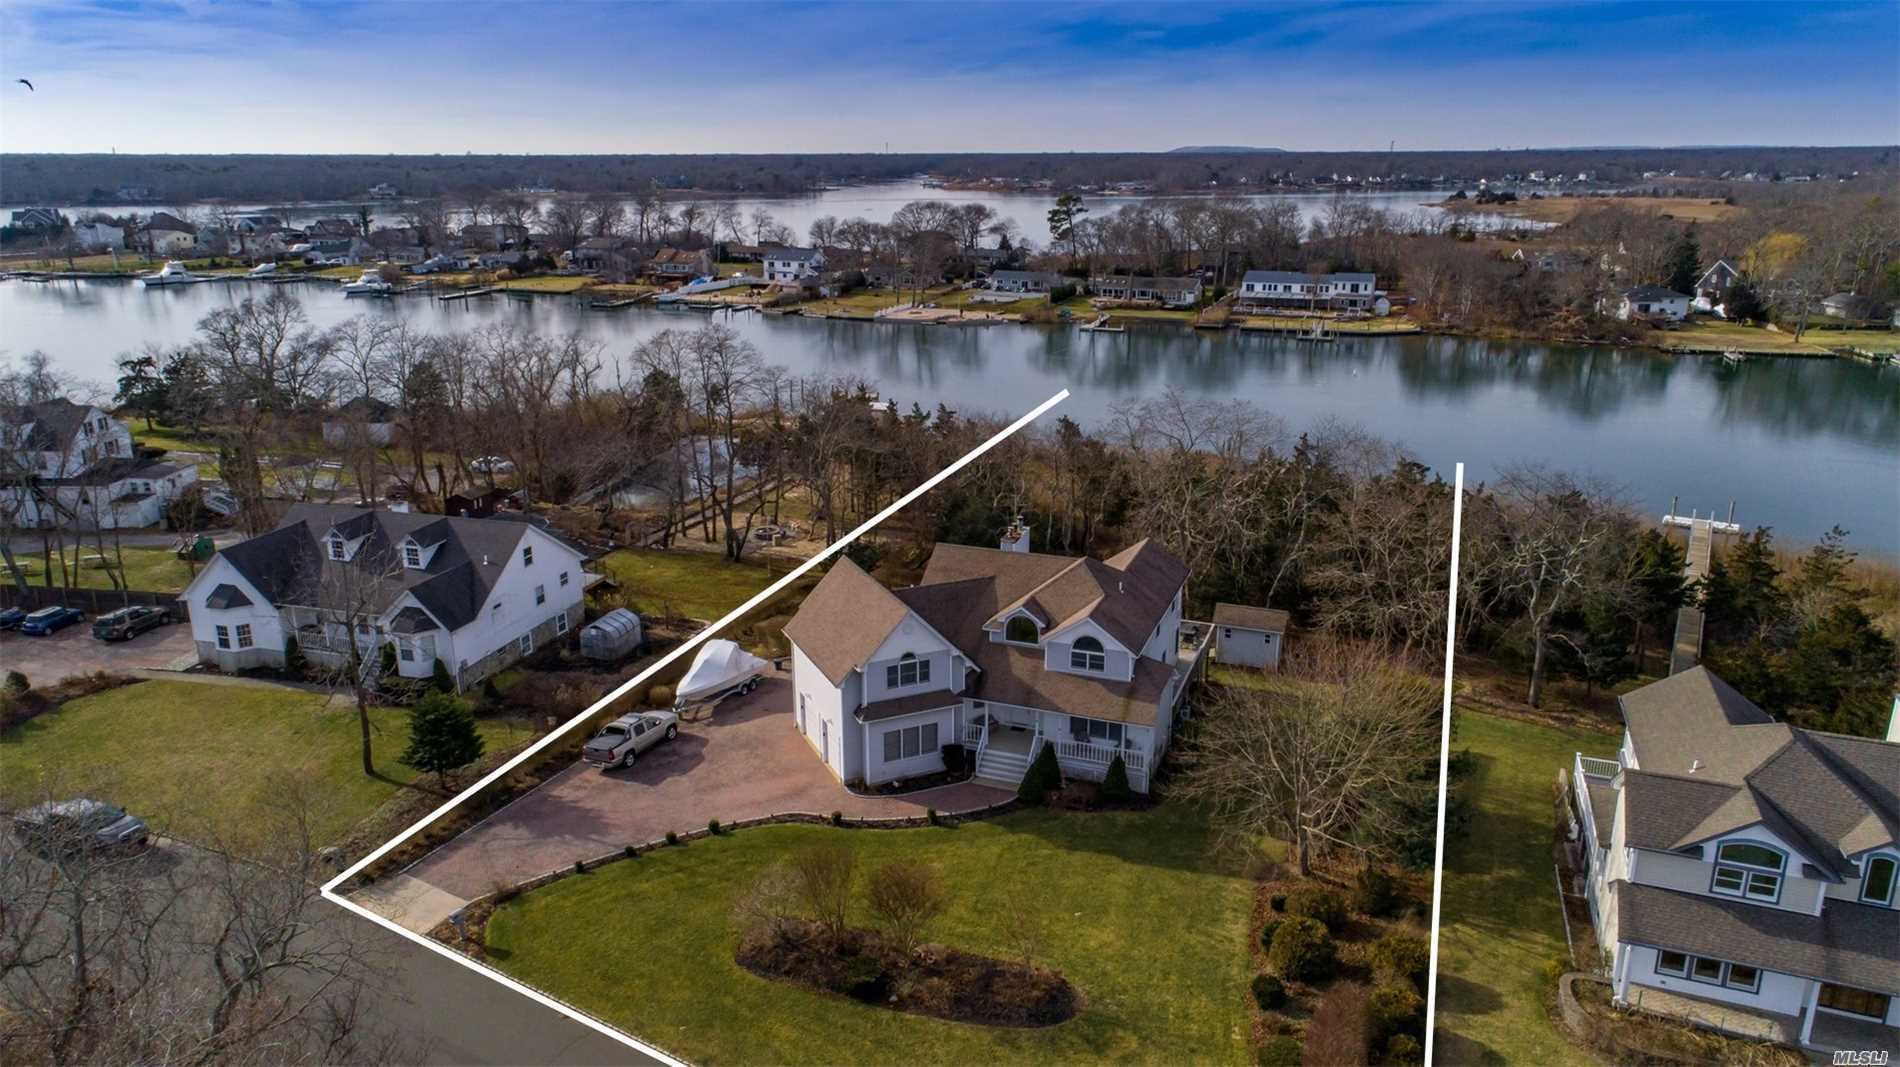 Beautiful Post Modern Home Situated On Builders Acre On Deep Water Old Neck Creek. Home Features Master Suite With Balcony Overlooking Creek, Entry Hall Which Leads To Great Room With Vaulted Ceilings And Fireplace, Eik With Viking Appliances, Formal Dr, Lr, 3 Additional Br's 2.5 Additional Baths, Full Walk-Out Basement With Game Room/Den W/Fireplace, Office, And Bath. Exterior: 2 Car Garage Paver Driveway, Floating Dock W/Electric Upper Lower Decks, And Patio. 70 Miles To Nyc